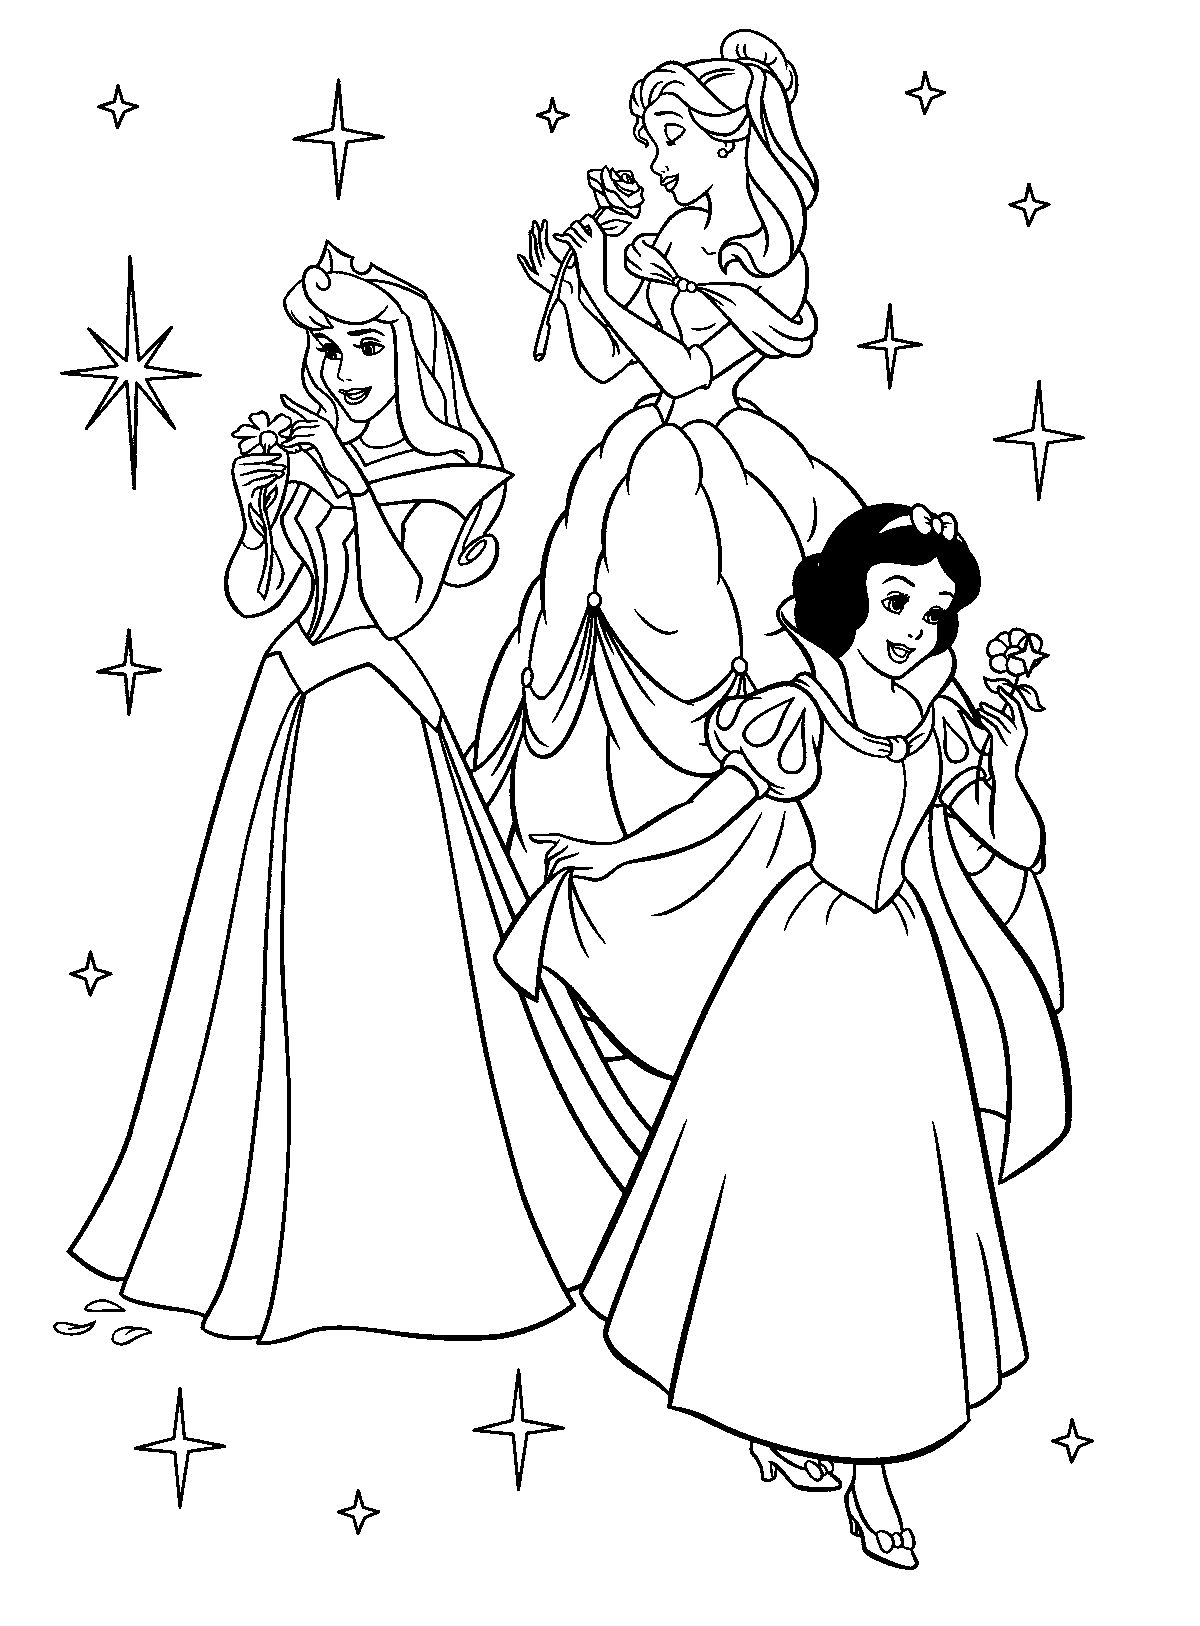 Free Printable Disney Princess Coloring Pages For Kids | Creatief ...